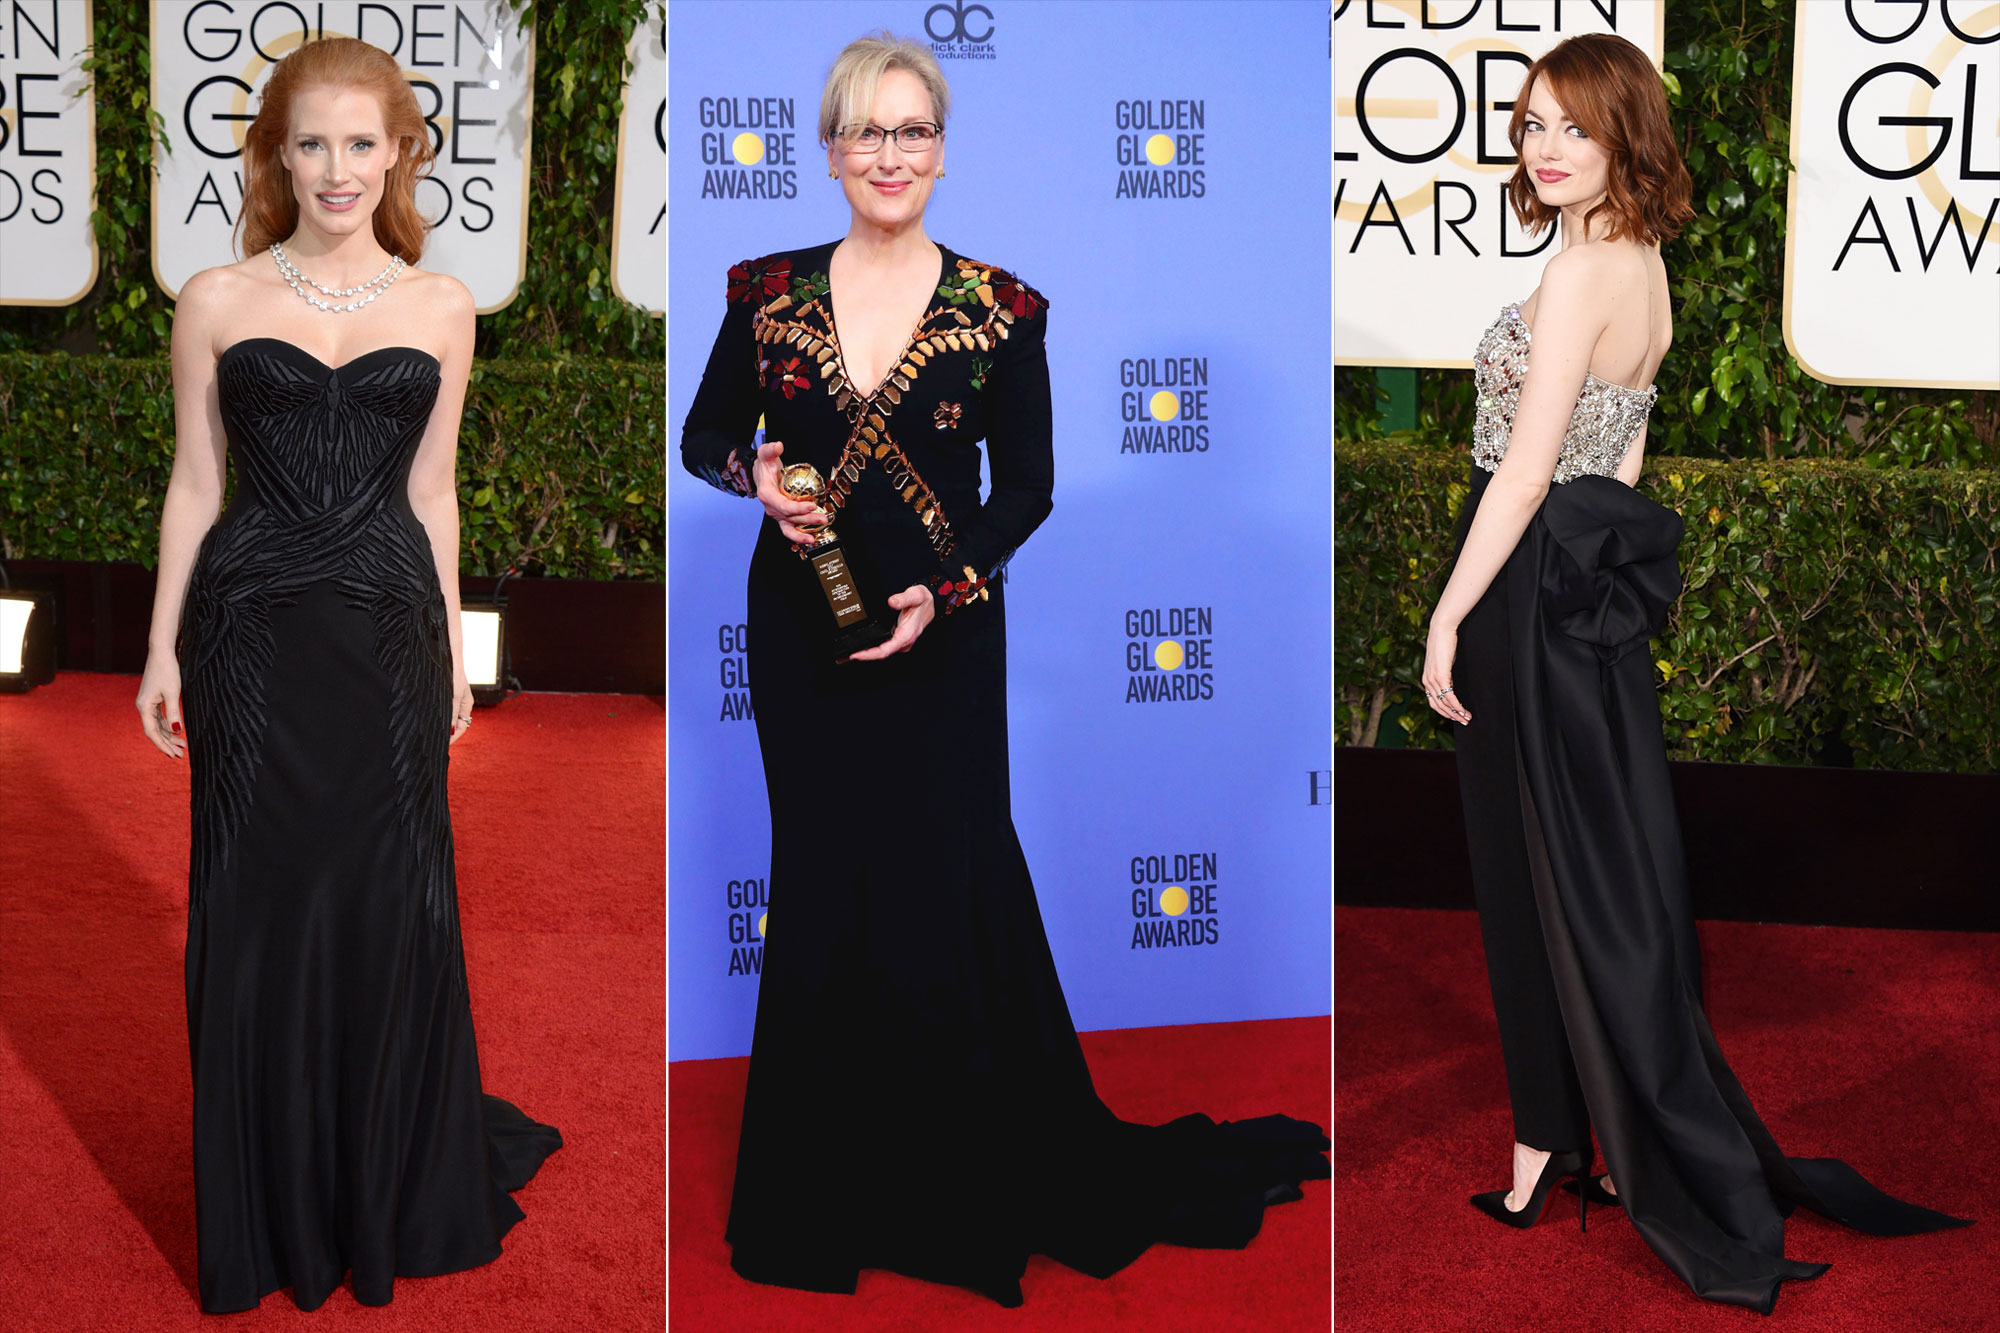 Actresses Will Reportedly Wear Black To The Golden Globes